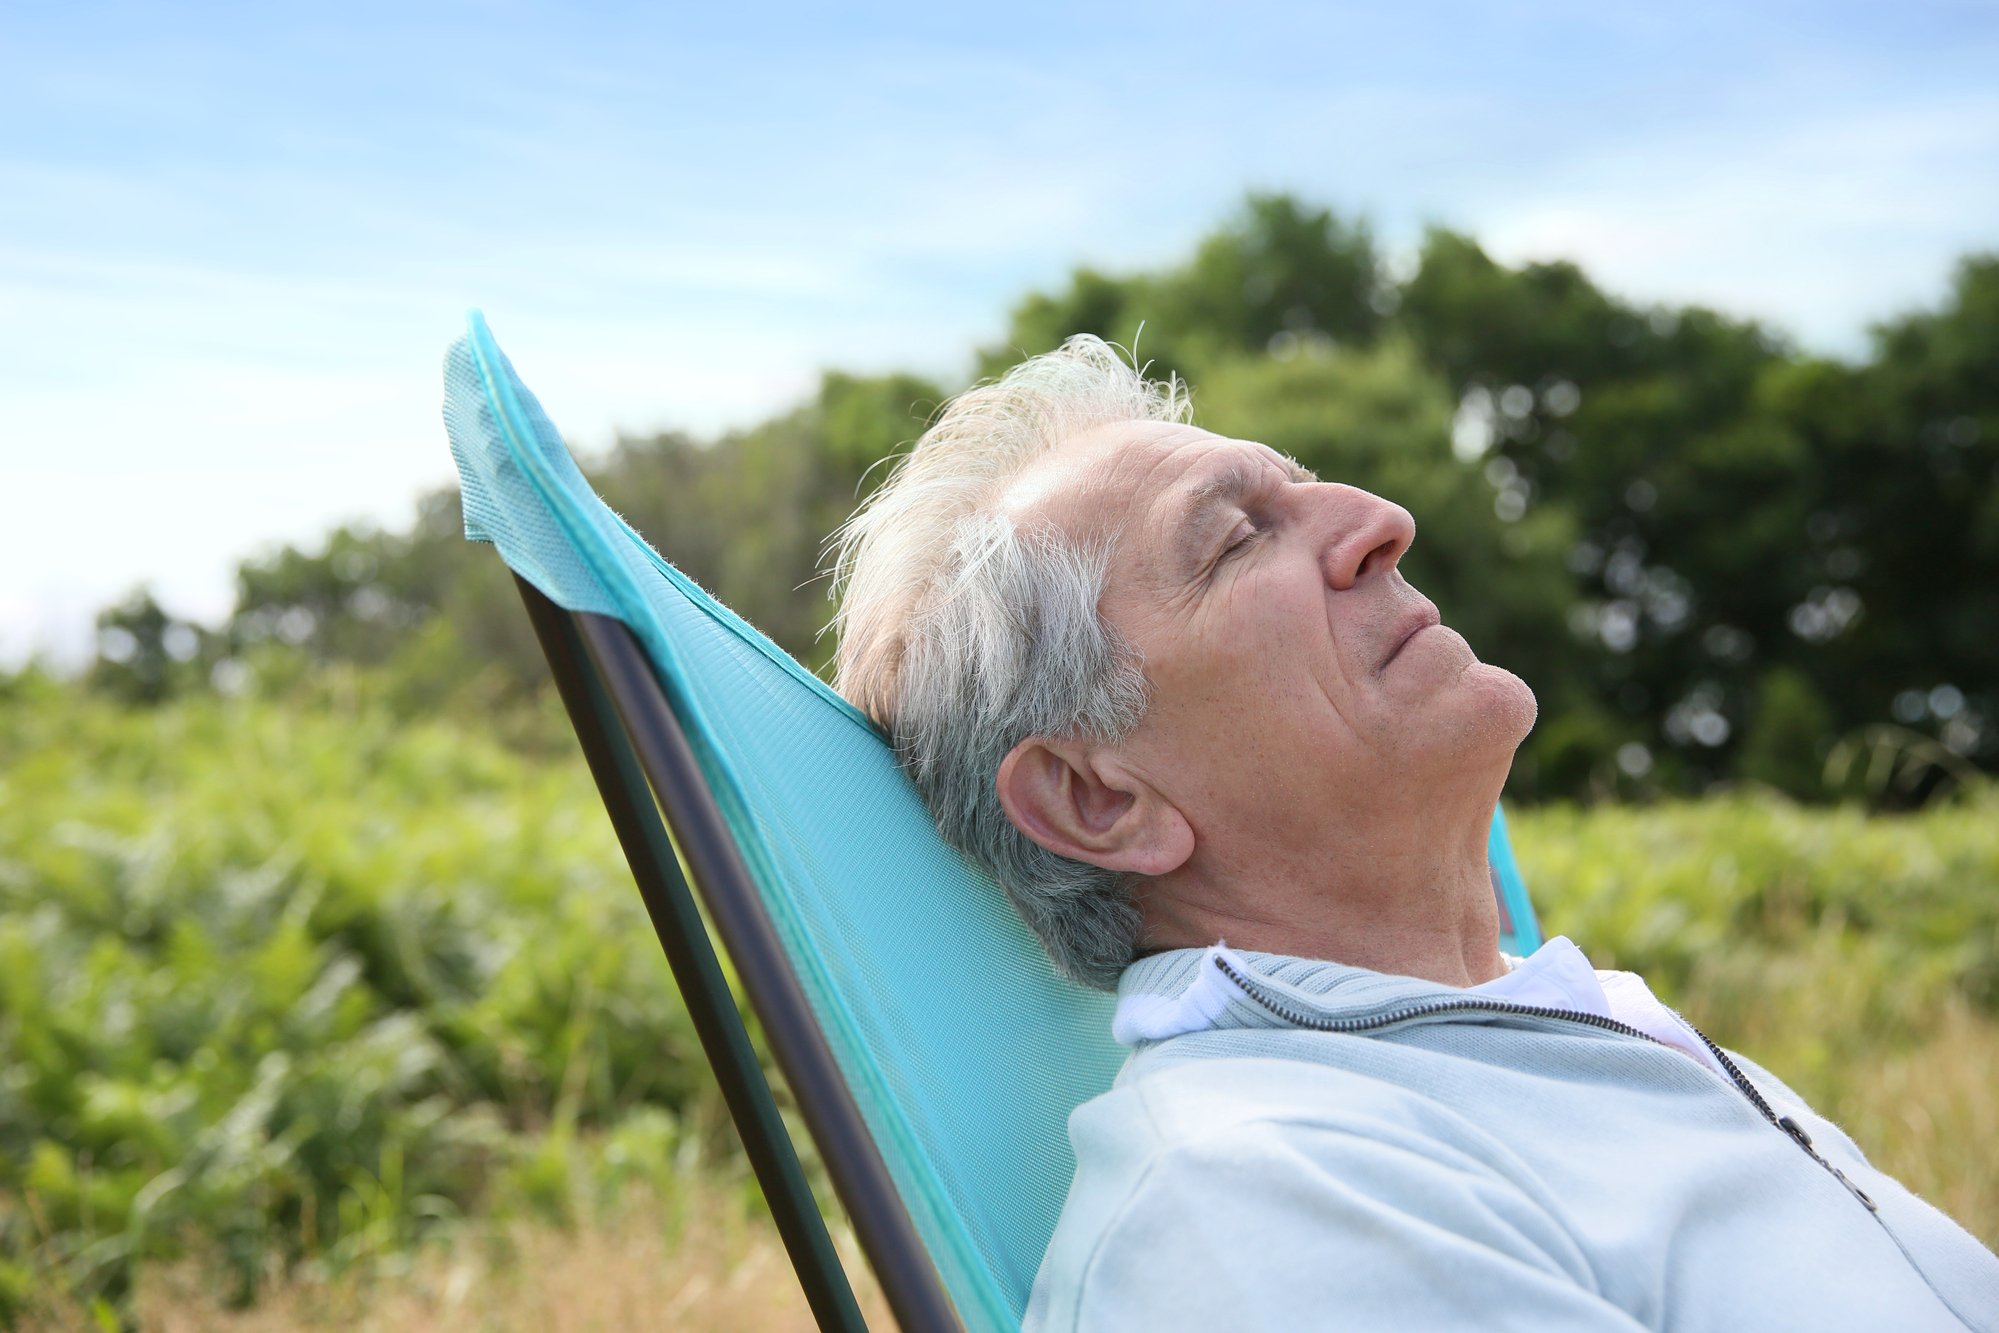 New research suggests regular afternoon naps (longer than five minutes but shorted than two hours) can be linked with better cognitive health in the elderly